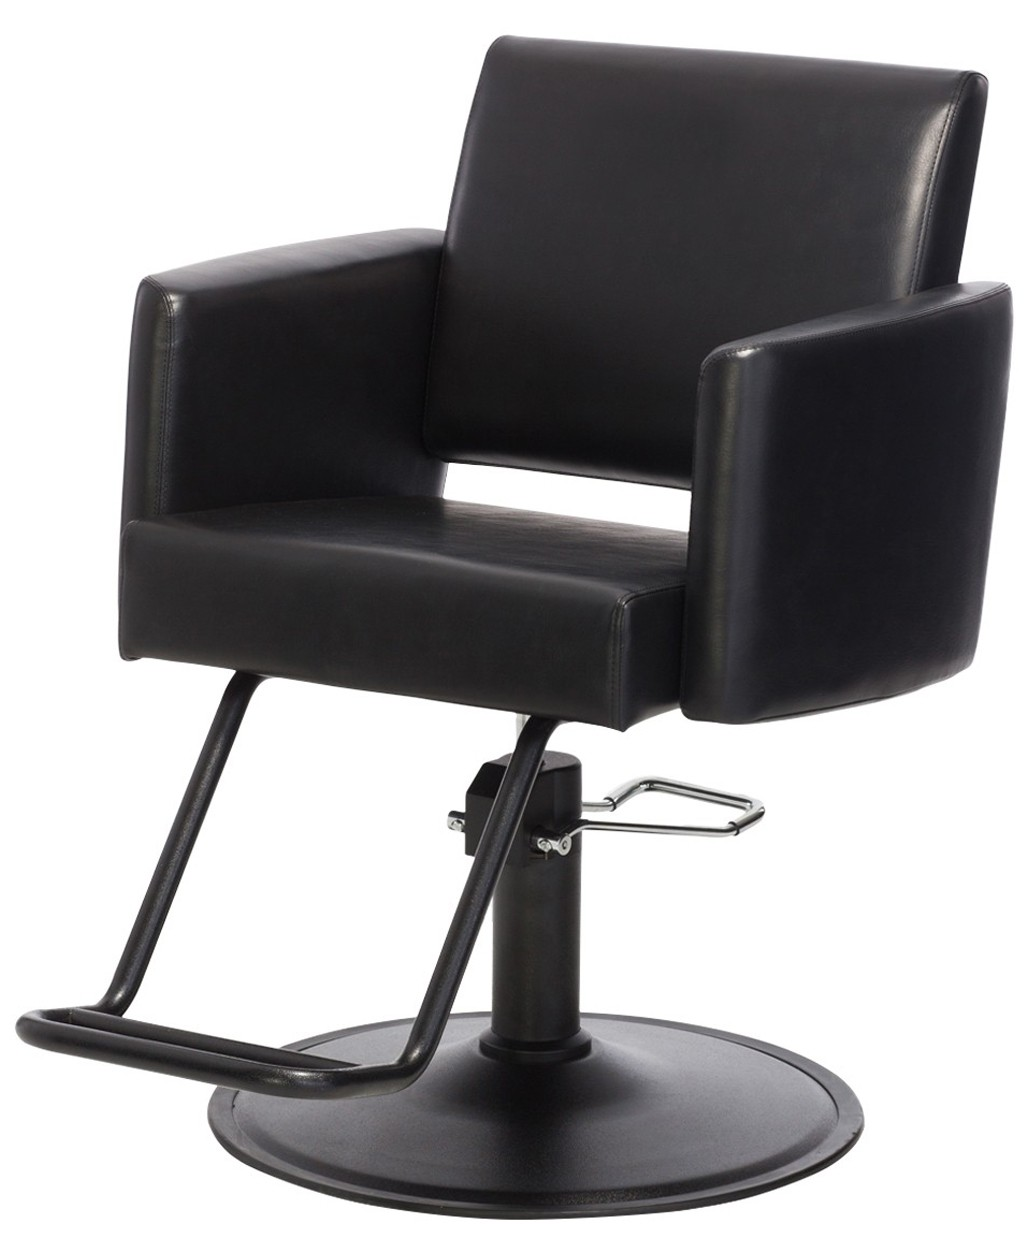 Onyx Styling Chair